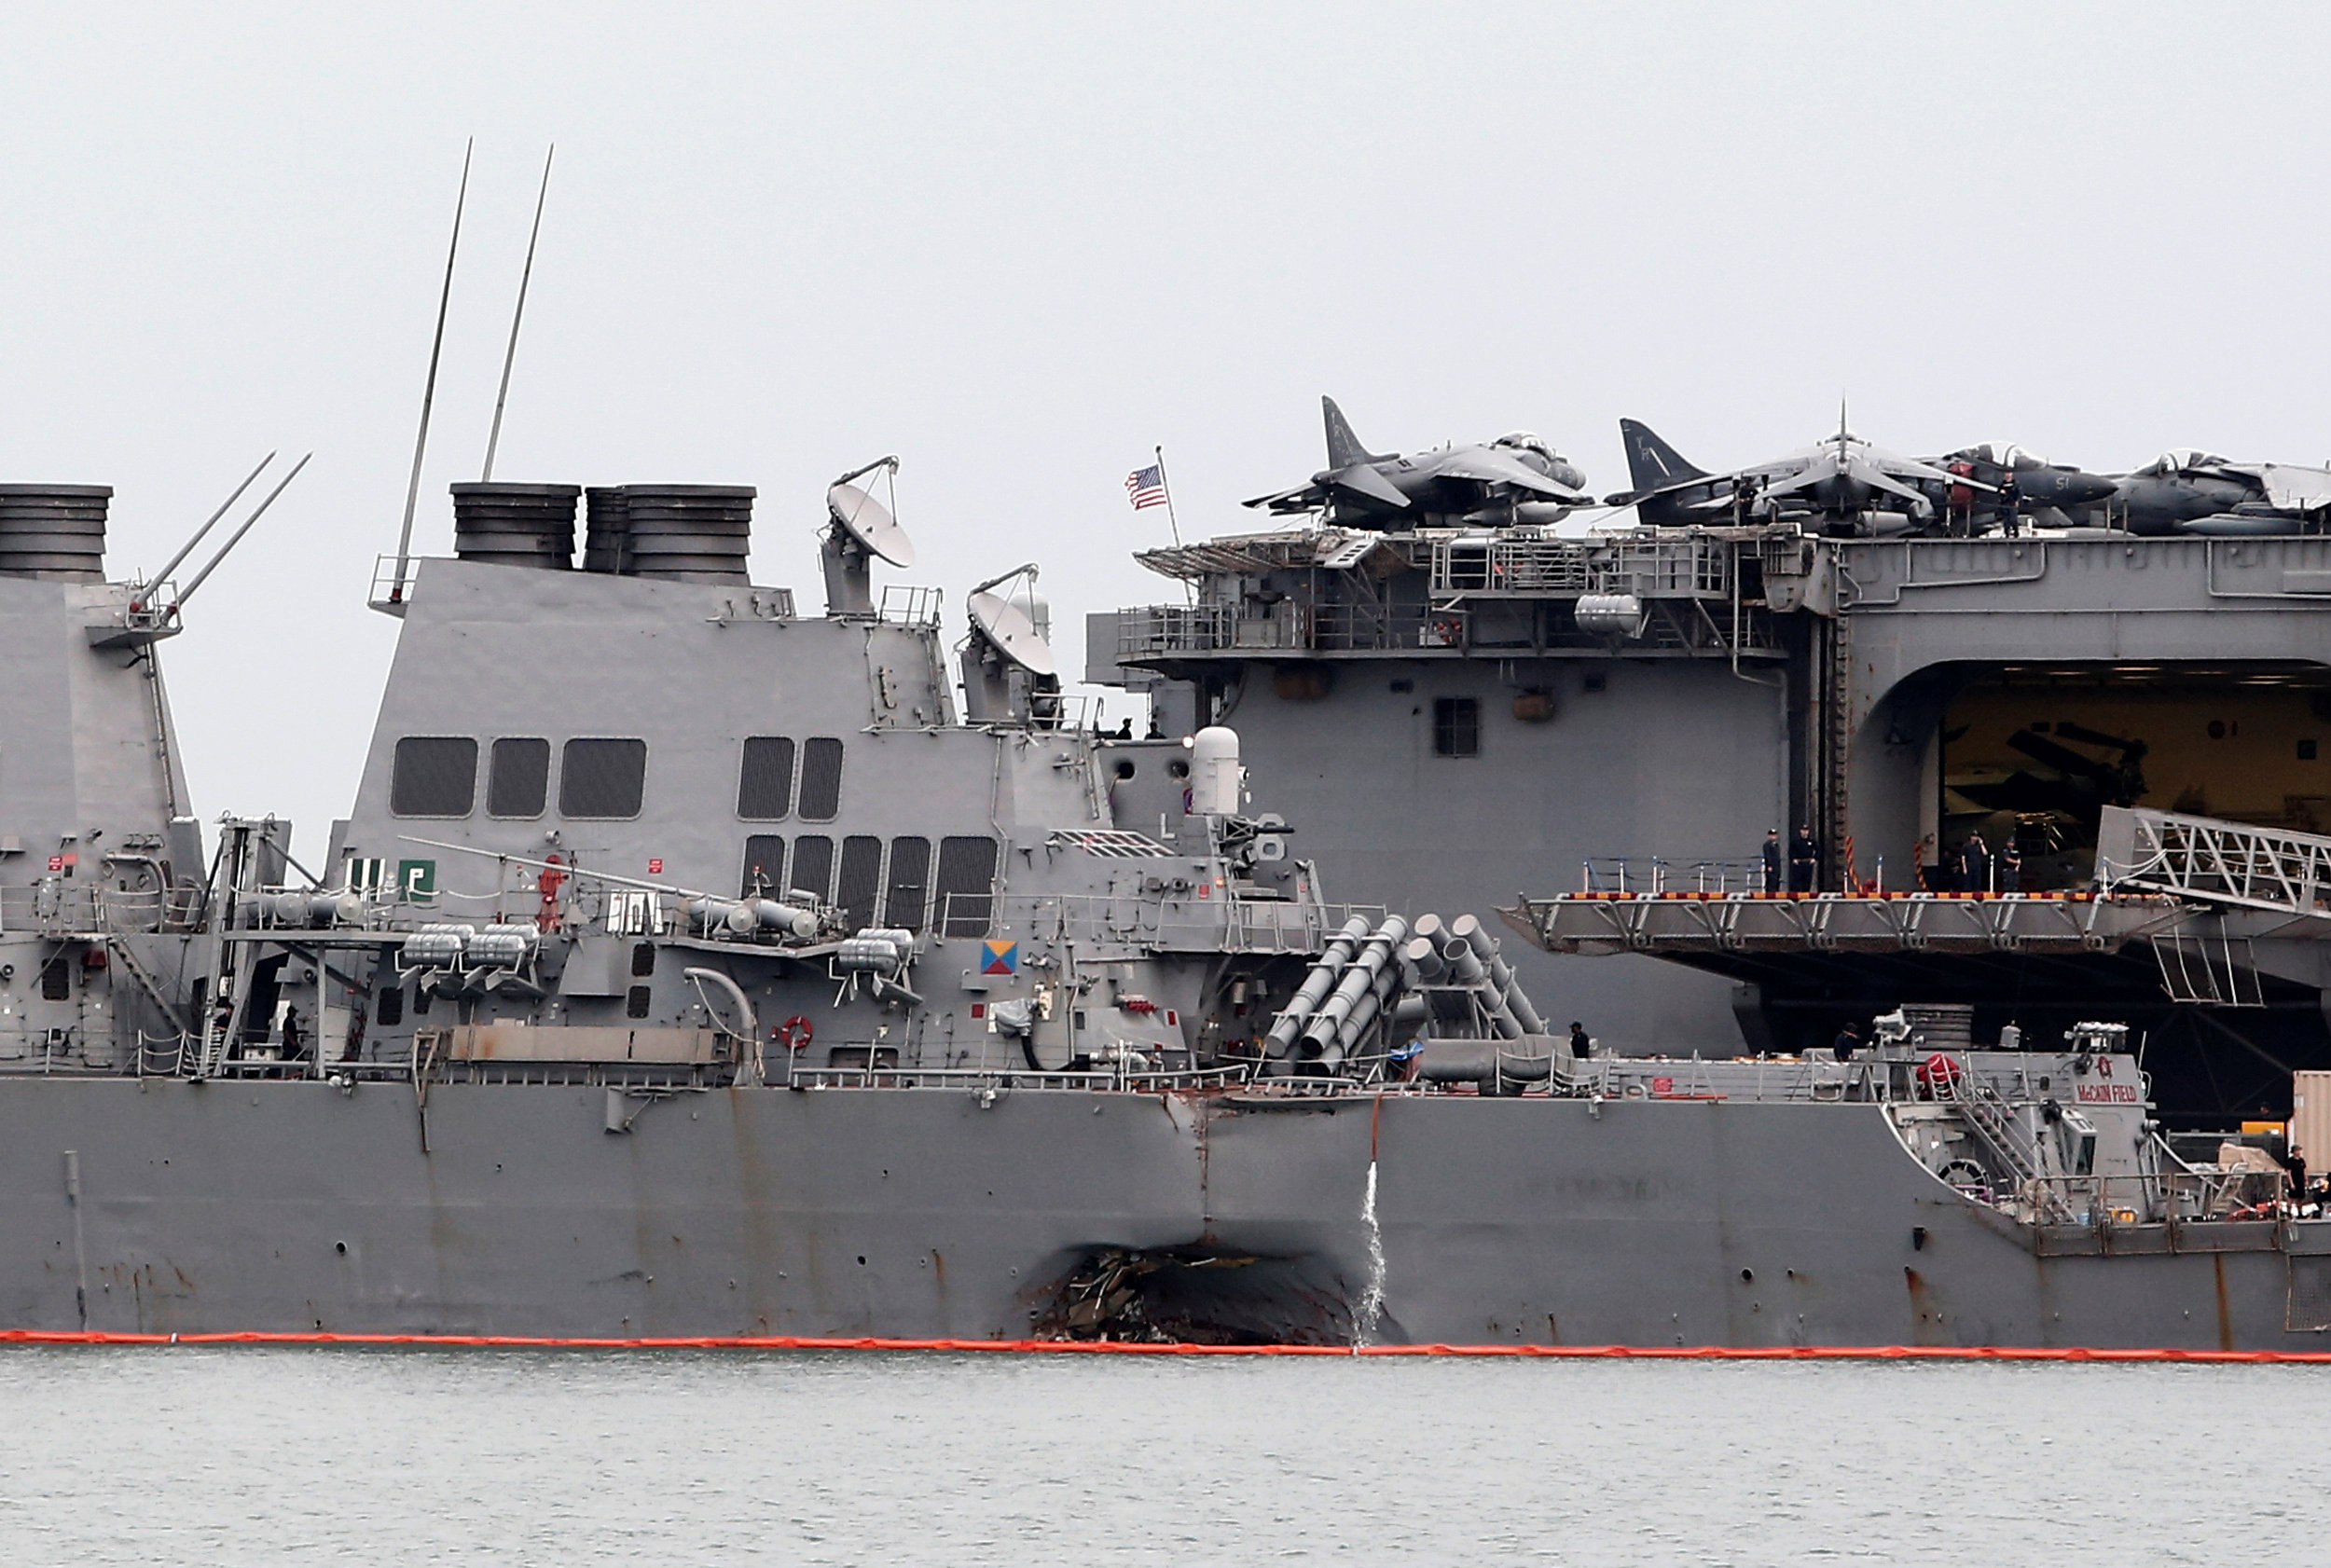 The damaged USS John McCain is docked next to USS America at Changi Naval Base in Singapore on August 22, 2017. (REUTERS/Calvin Wong)